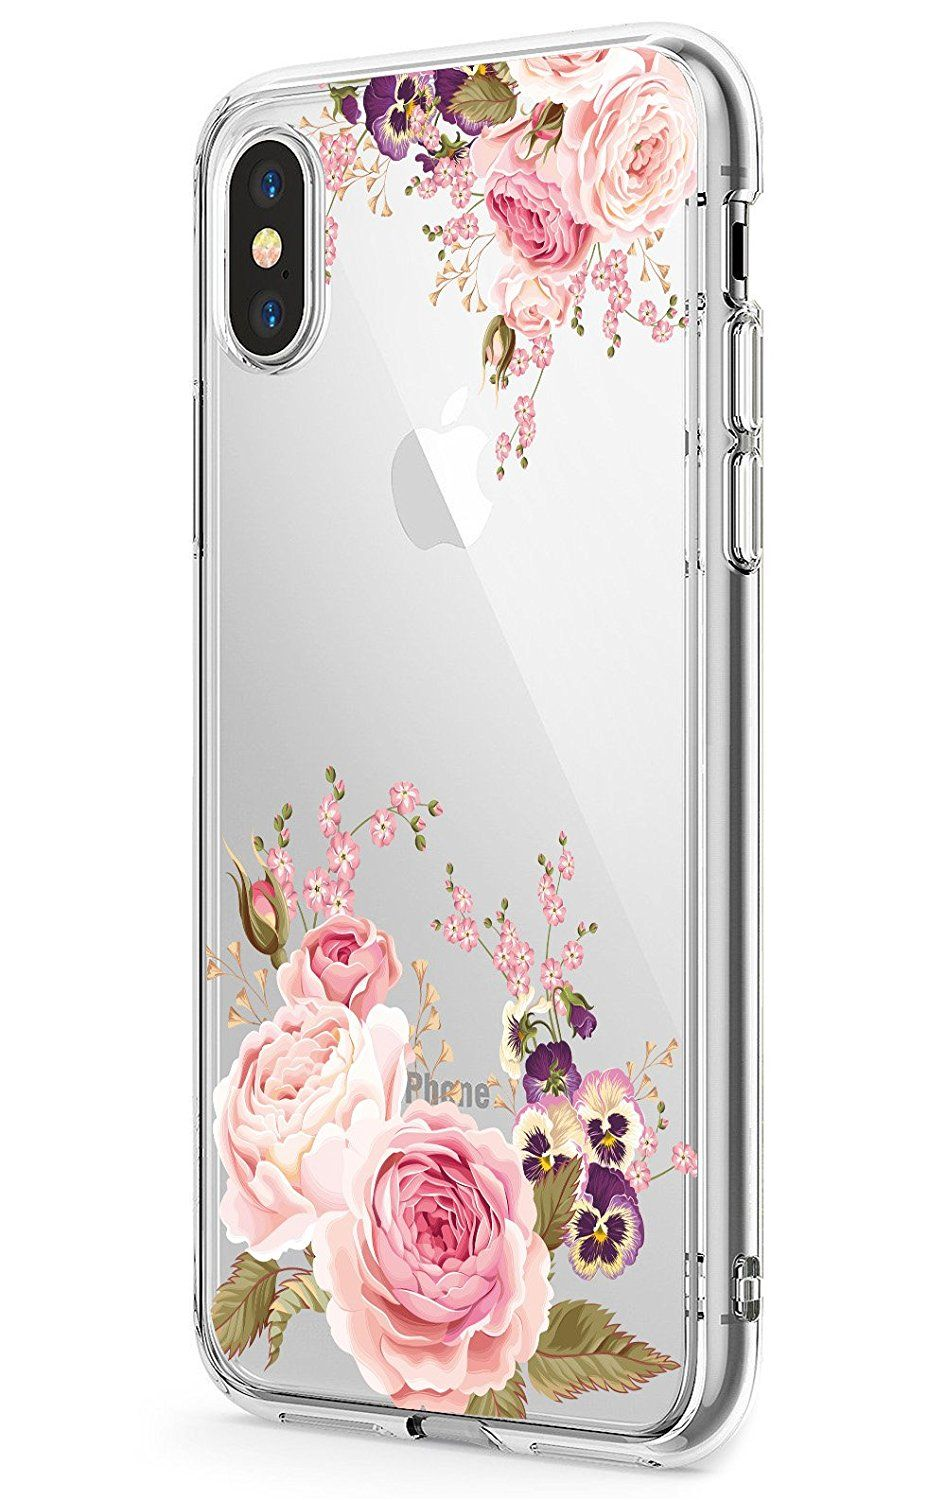 Iphone X Case Jaholan Girls Floral Design Clear Tpu Soft Slim Flexible Silicone Glossy Phone Case For Apple Iphone X 2017 Release Iphone Cases Iphone Case